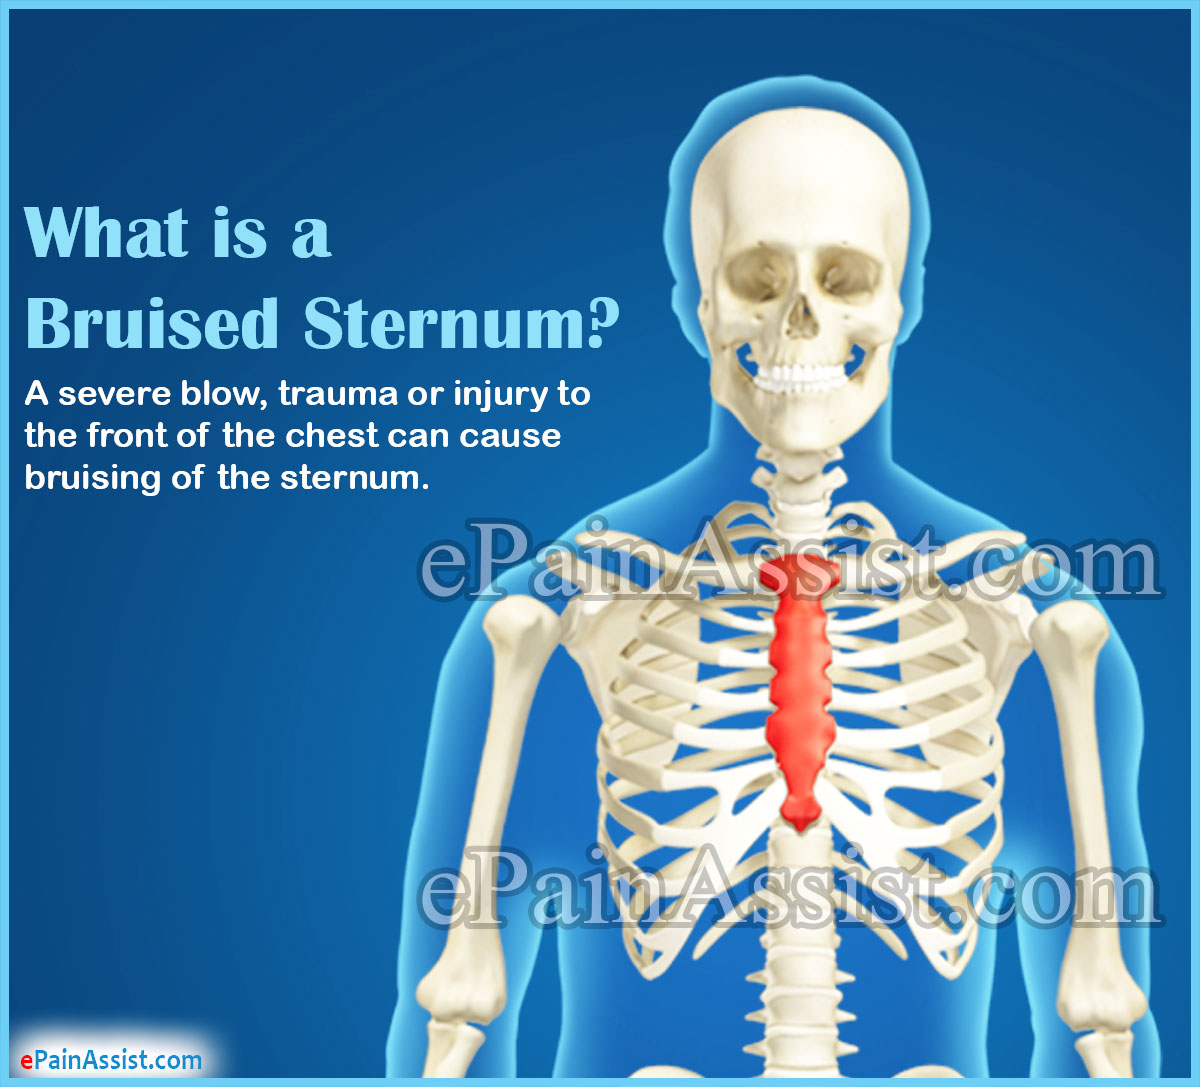 What is a Bruised Sternum